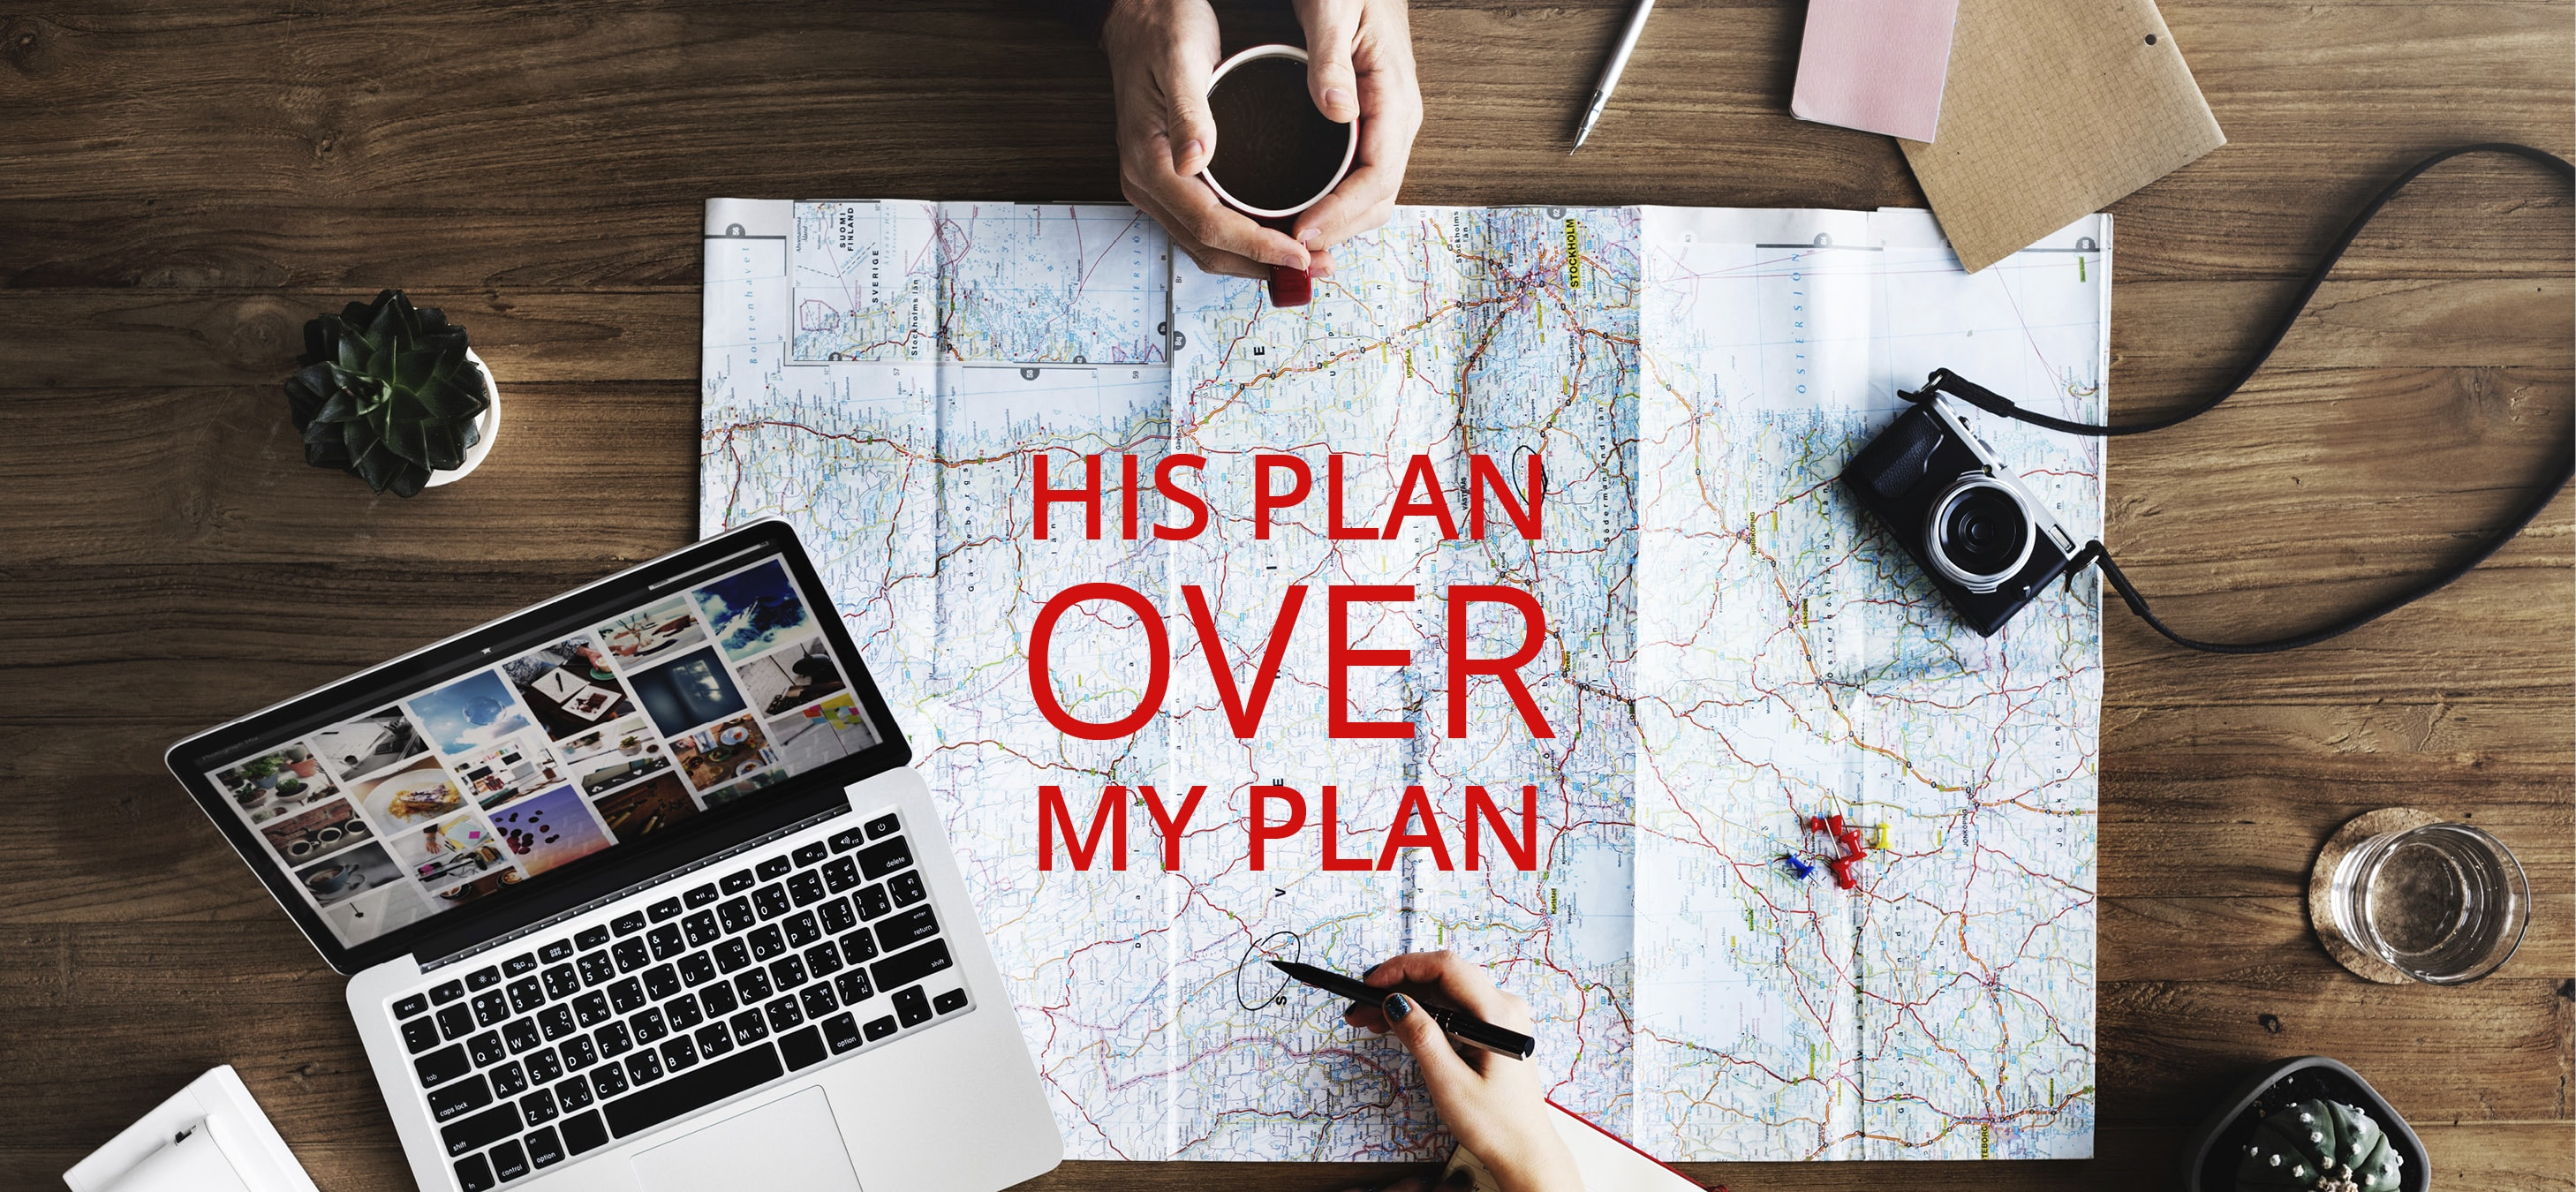 his plan over my plan